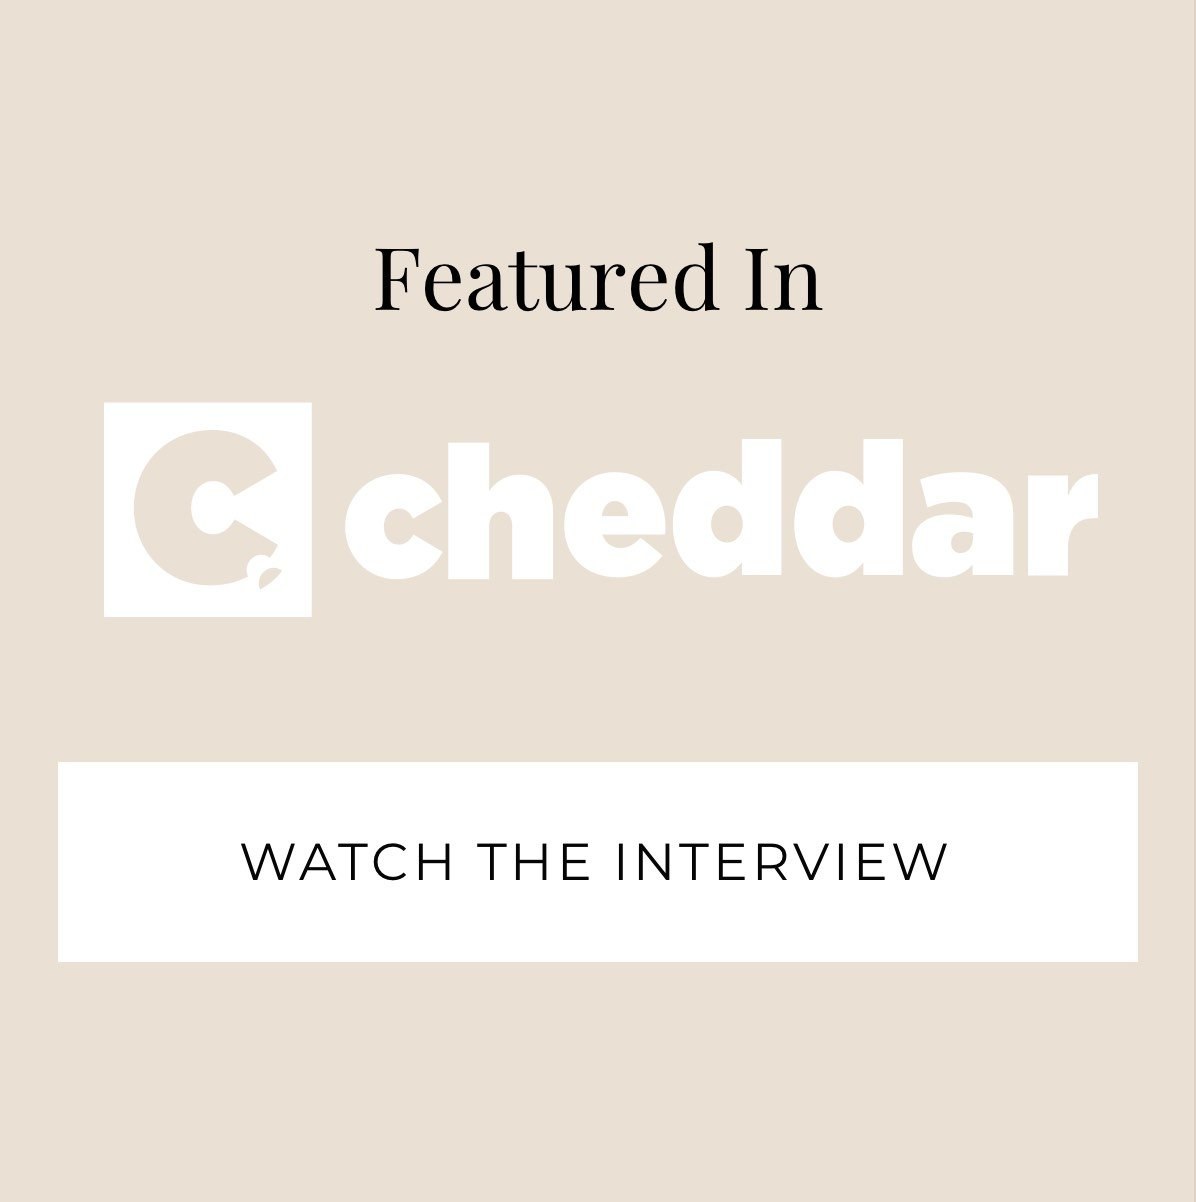 Featured In Cheddar